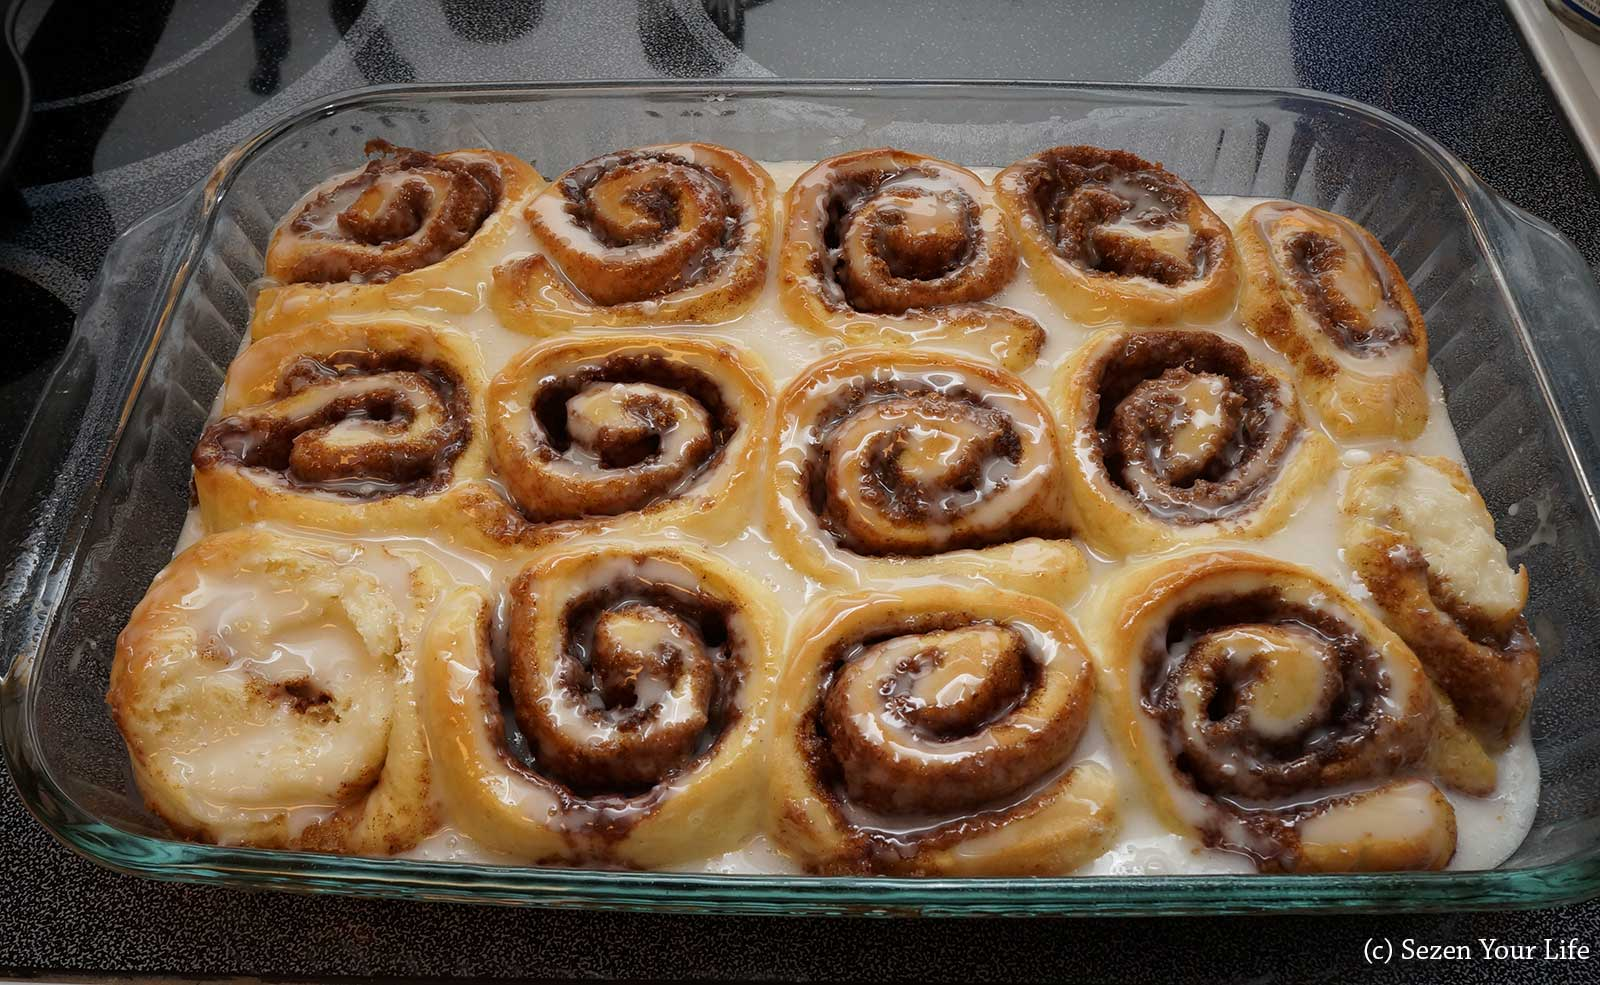 Finished Cinnamon Rolls by Sarah Franzen